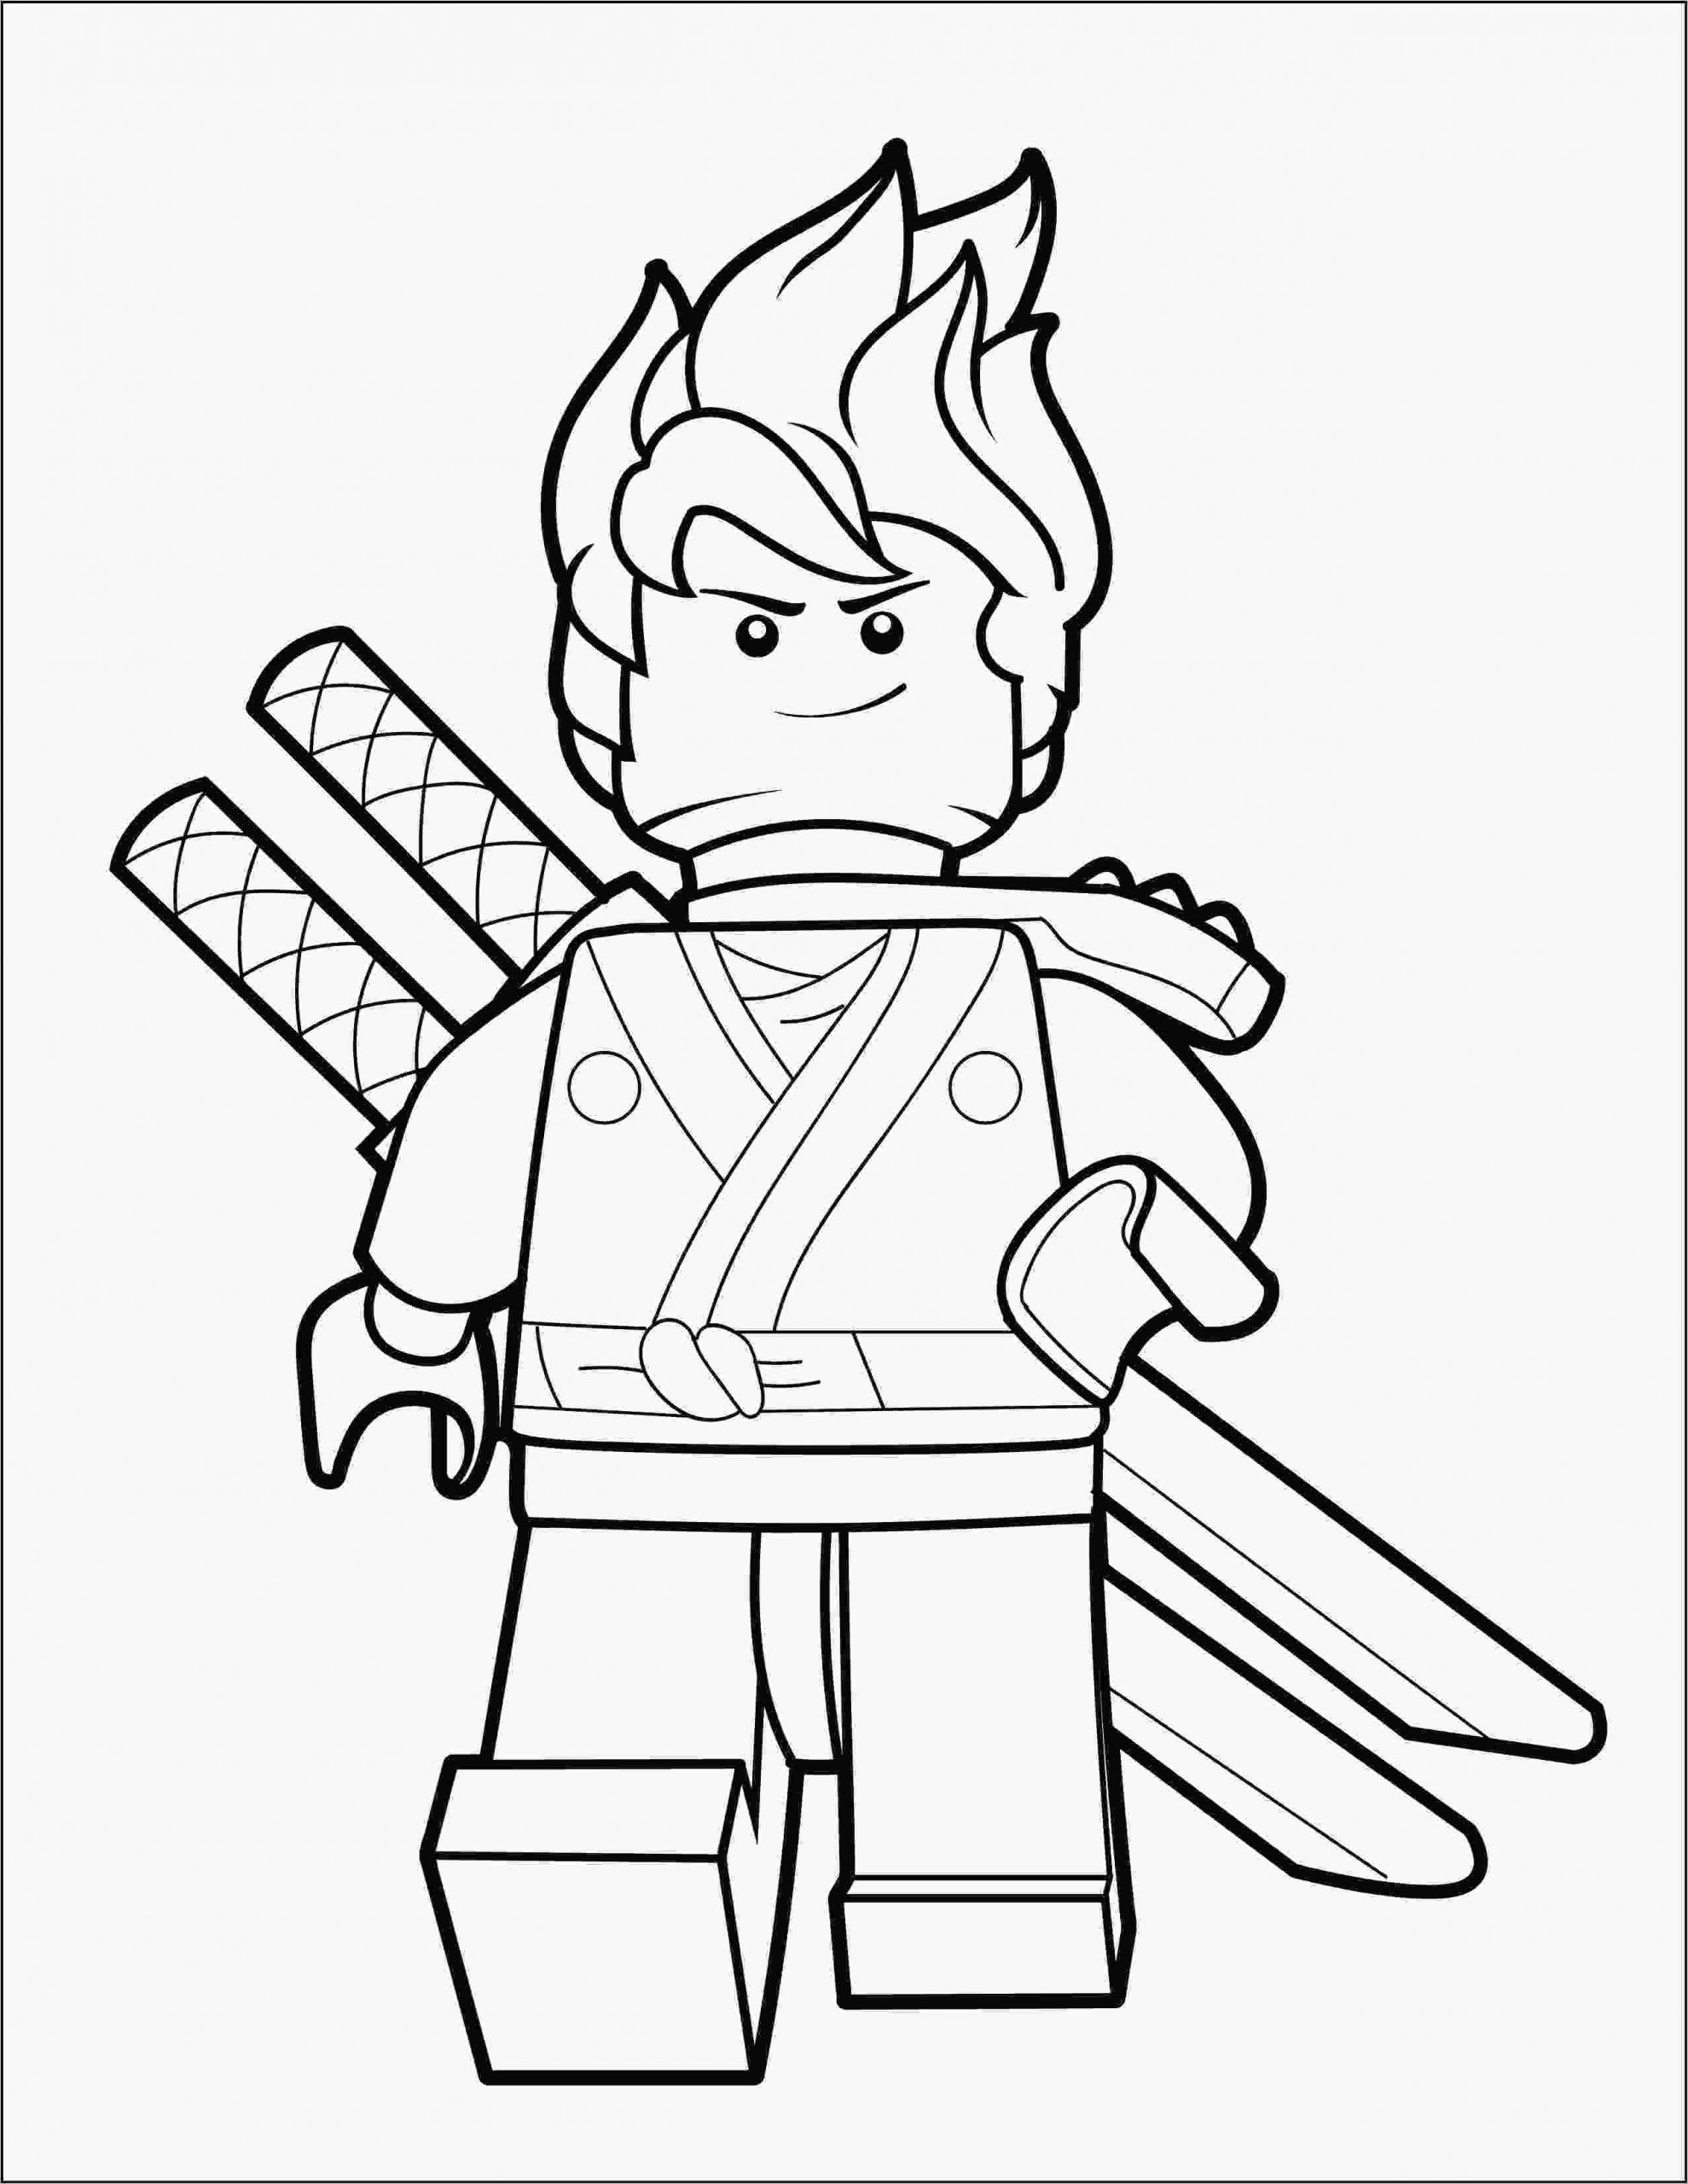 Lego Ninjago Kai Coloring Pages In 2020 Lego Movie Coloring Pages Ninjago Coloring Pages Lego Coloring